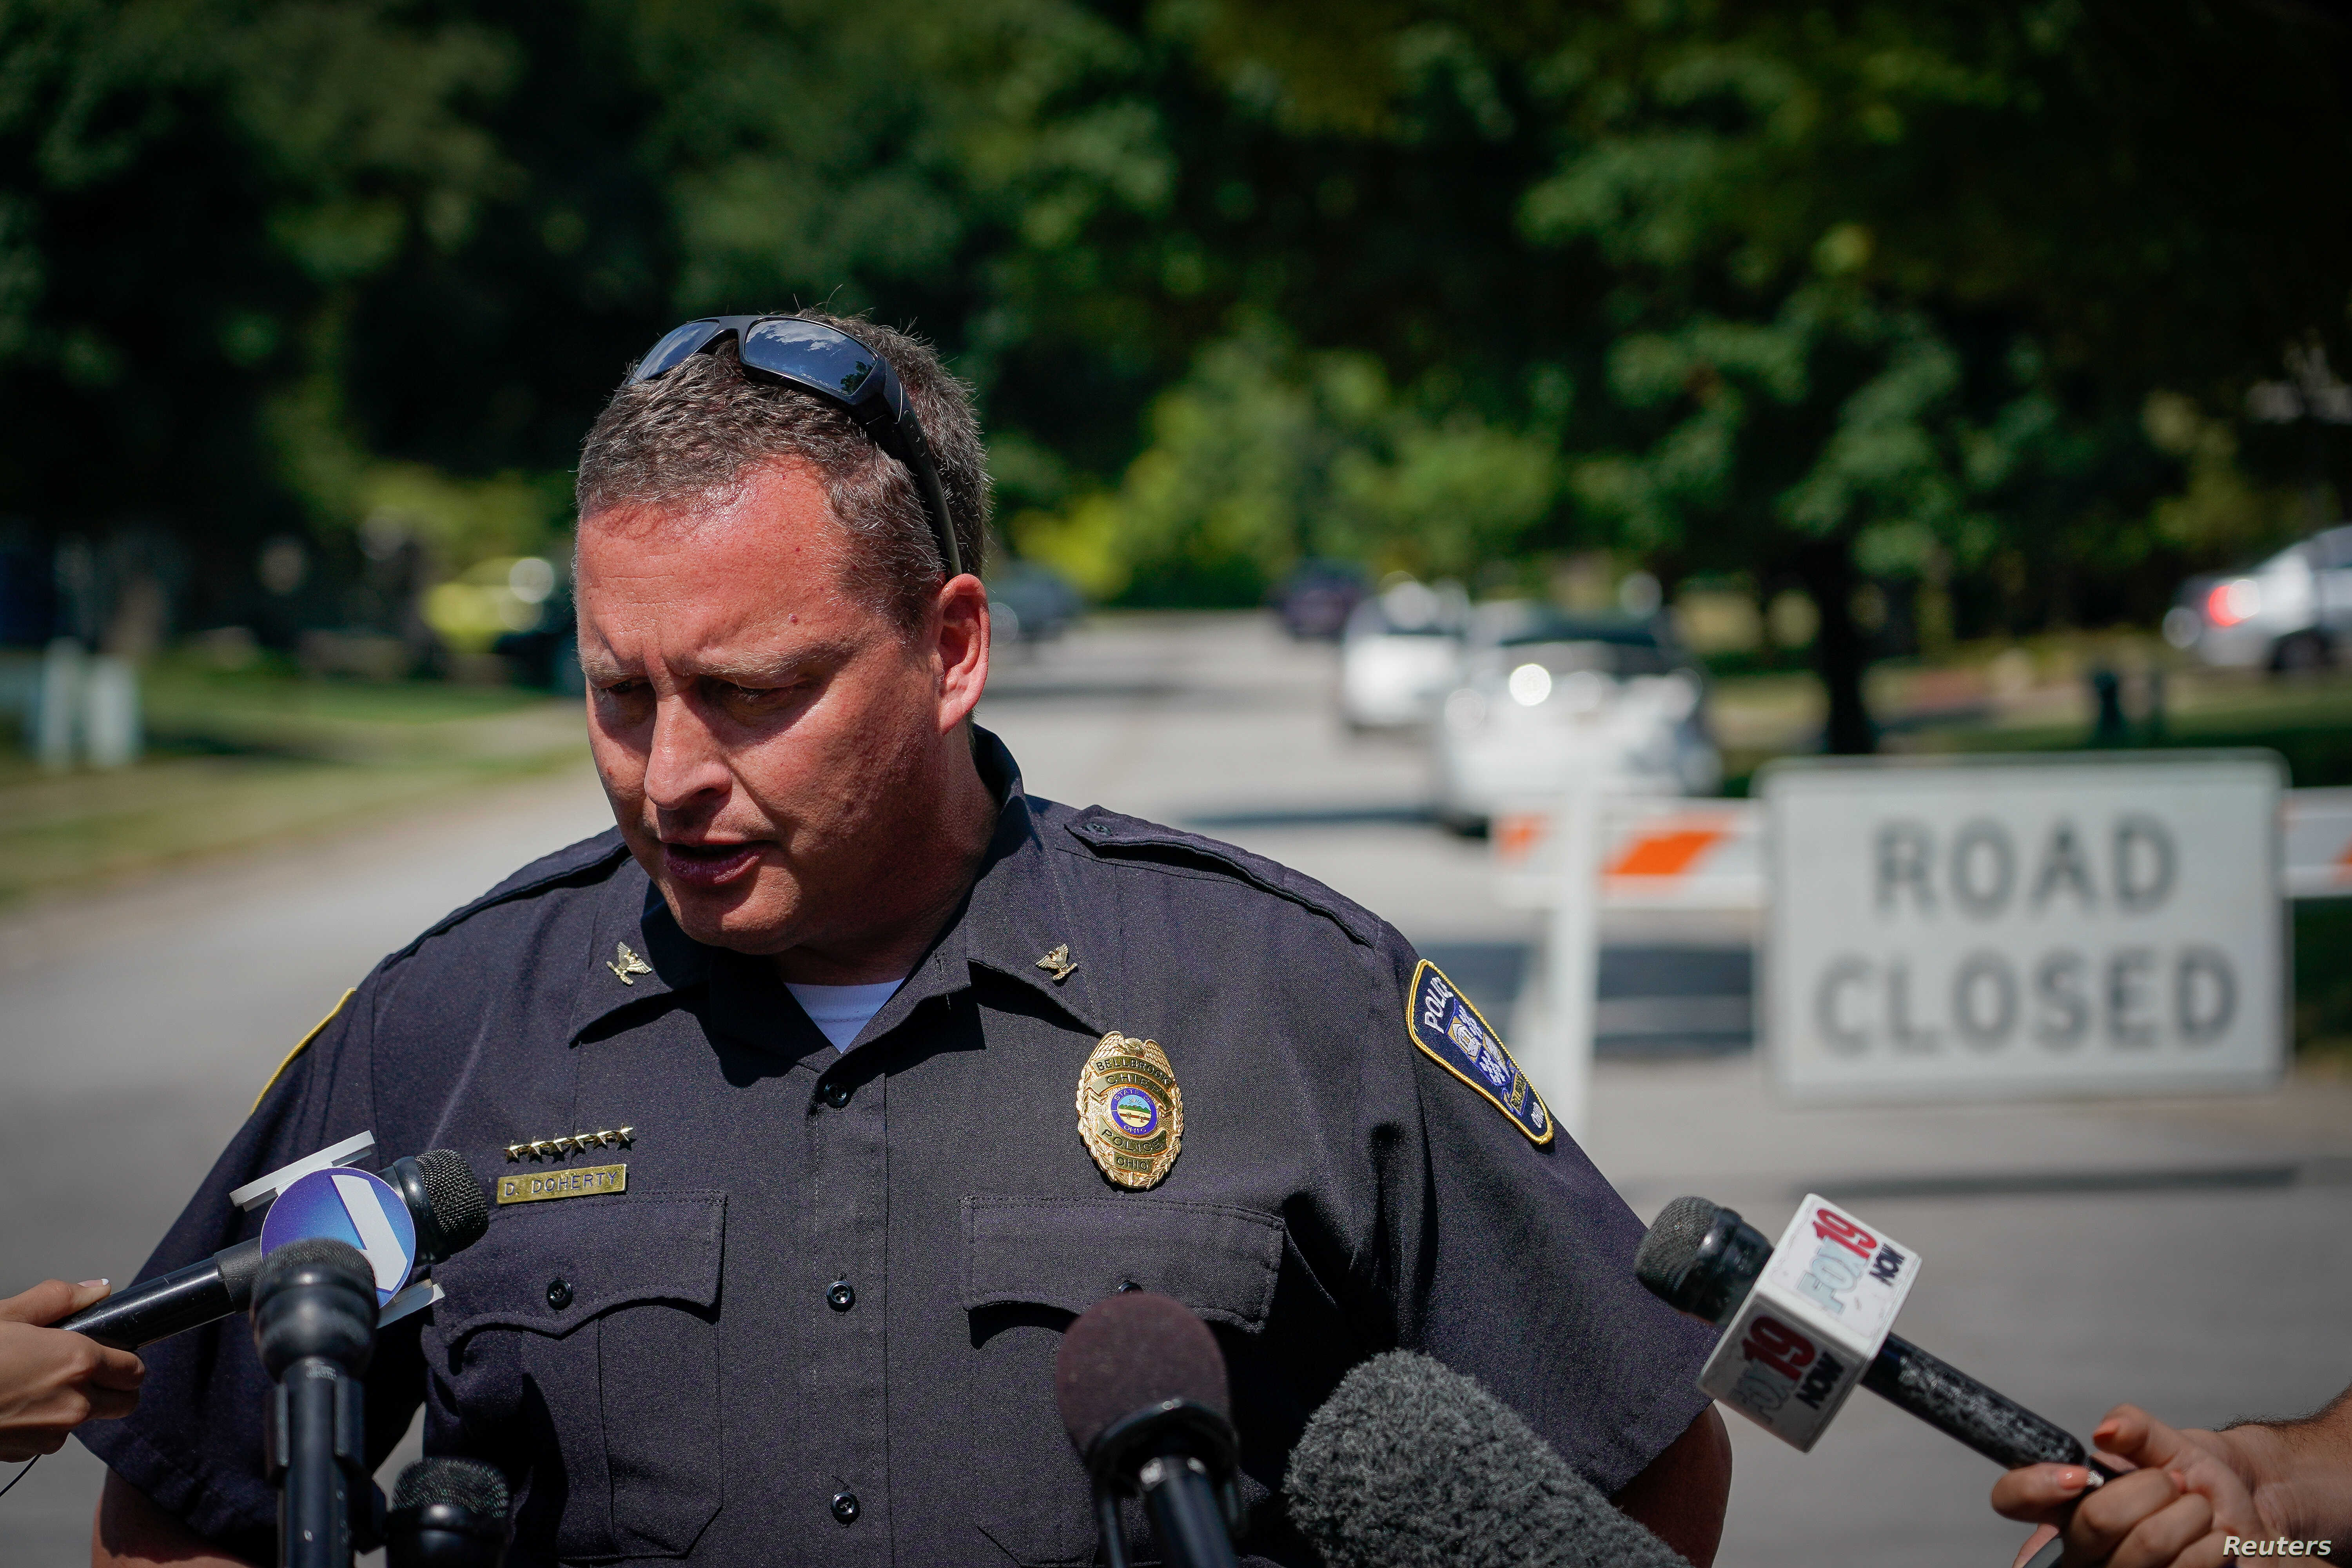 Bellbrook Police Chief Doug Doherty briefs the media near the family home of Dayton mass shooting suspect Connor Betts, in Bellbrook, Ohio, Aug. 5, 2019.